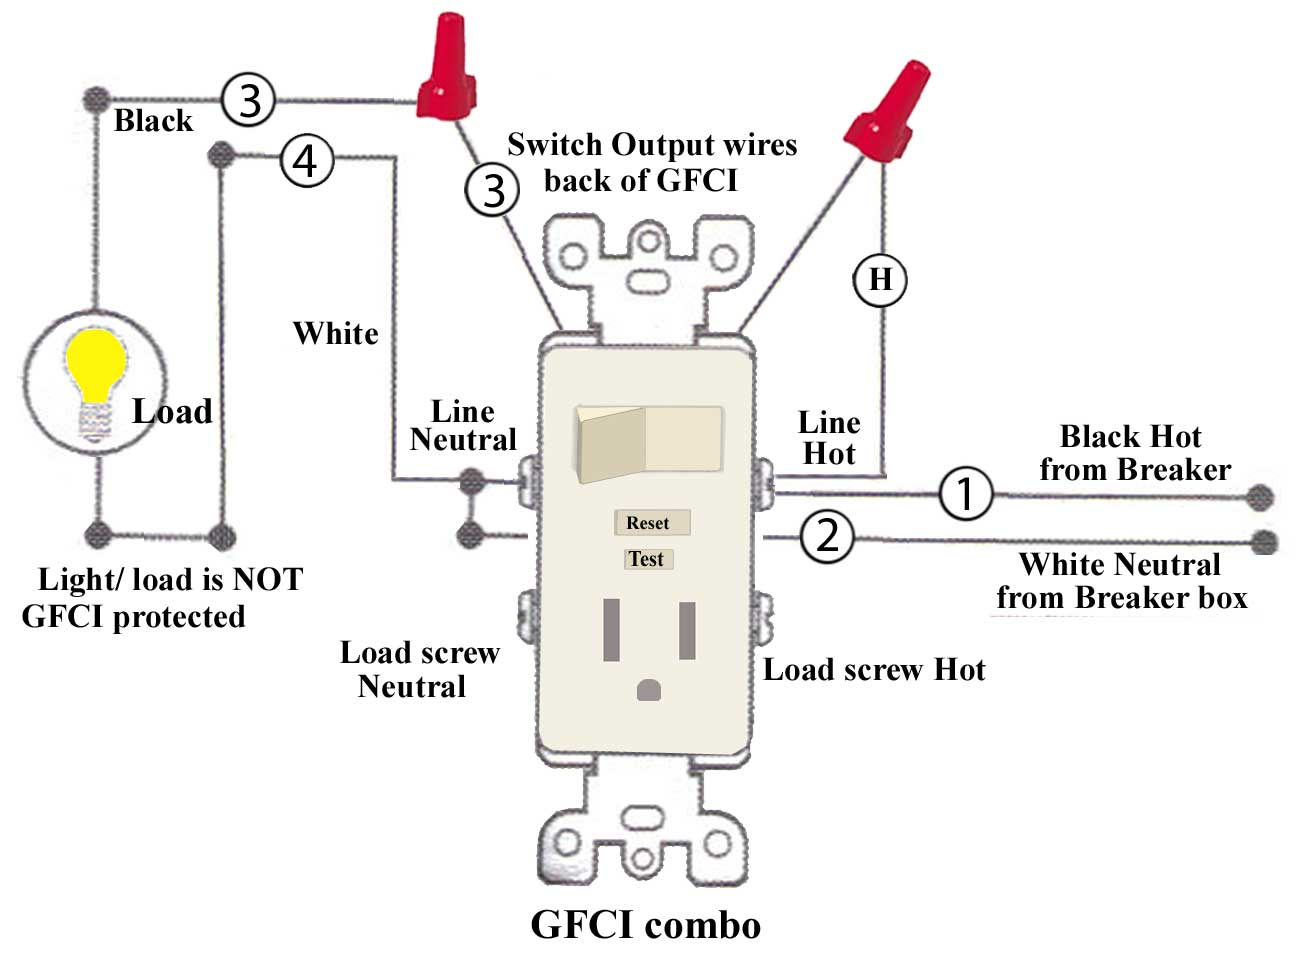 Wiring Diagrams For Leviton Bination Switch Gfci | Wiring ... on conduit wiring, led wiring, daisy chain wiring, distribution board, earthing system, power cable, three-phase electric power, national electrical code, alternating current, duplex wiring, lutron wiring, afci wiring, power cord, ground and neutral, plumbing wiring, knob-and-tube wiring, extension cord, junction box, electrical wiring, electric power distribution, low voltage wiring, 220 volt to 110 volt wiring, dimmer wiring, circuit wiring, ground wiring, electricity wiring, circuit breaker, electrical engineering, electric motor, amp wiring, 3 phase breaker panel wiring, receptacles wiring, electrical conduit, hot tub wiring, timer wiring, wiring diagram, diy wiring,